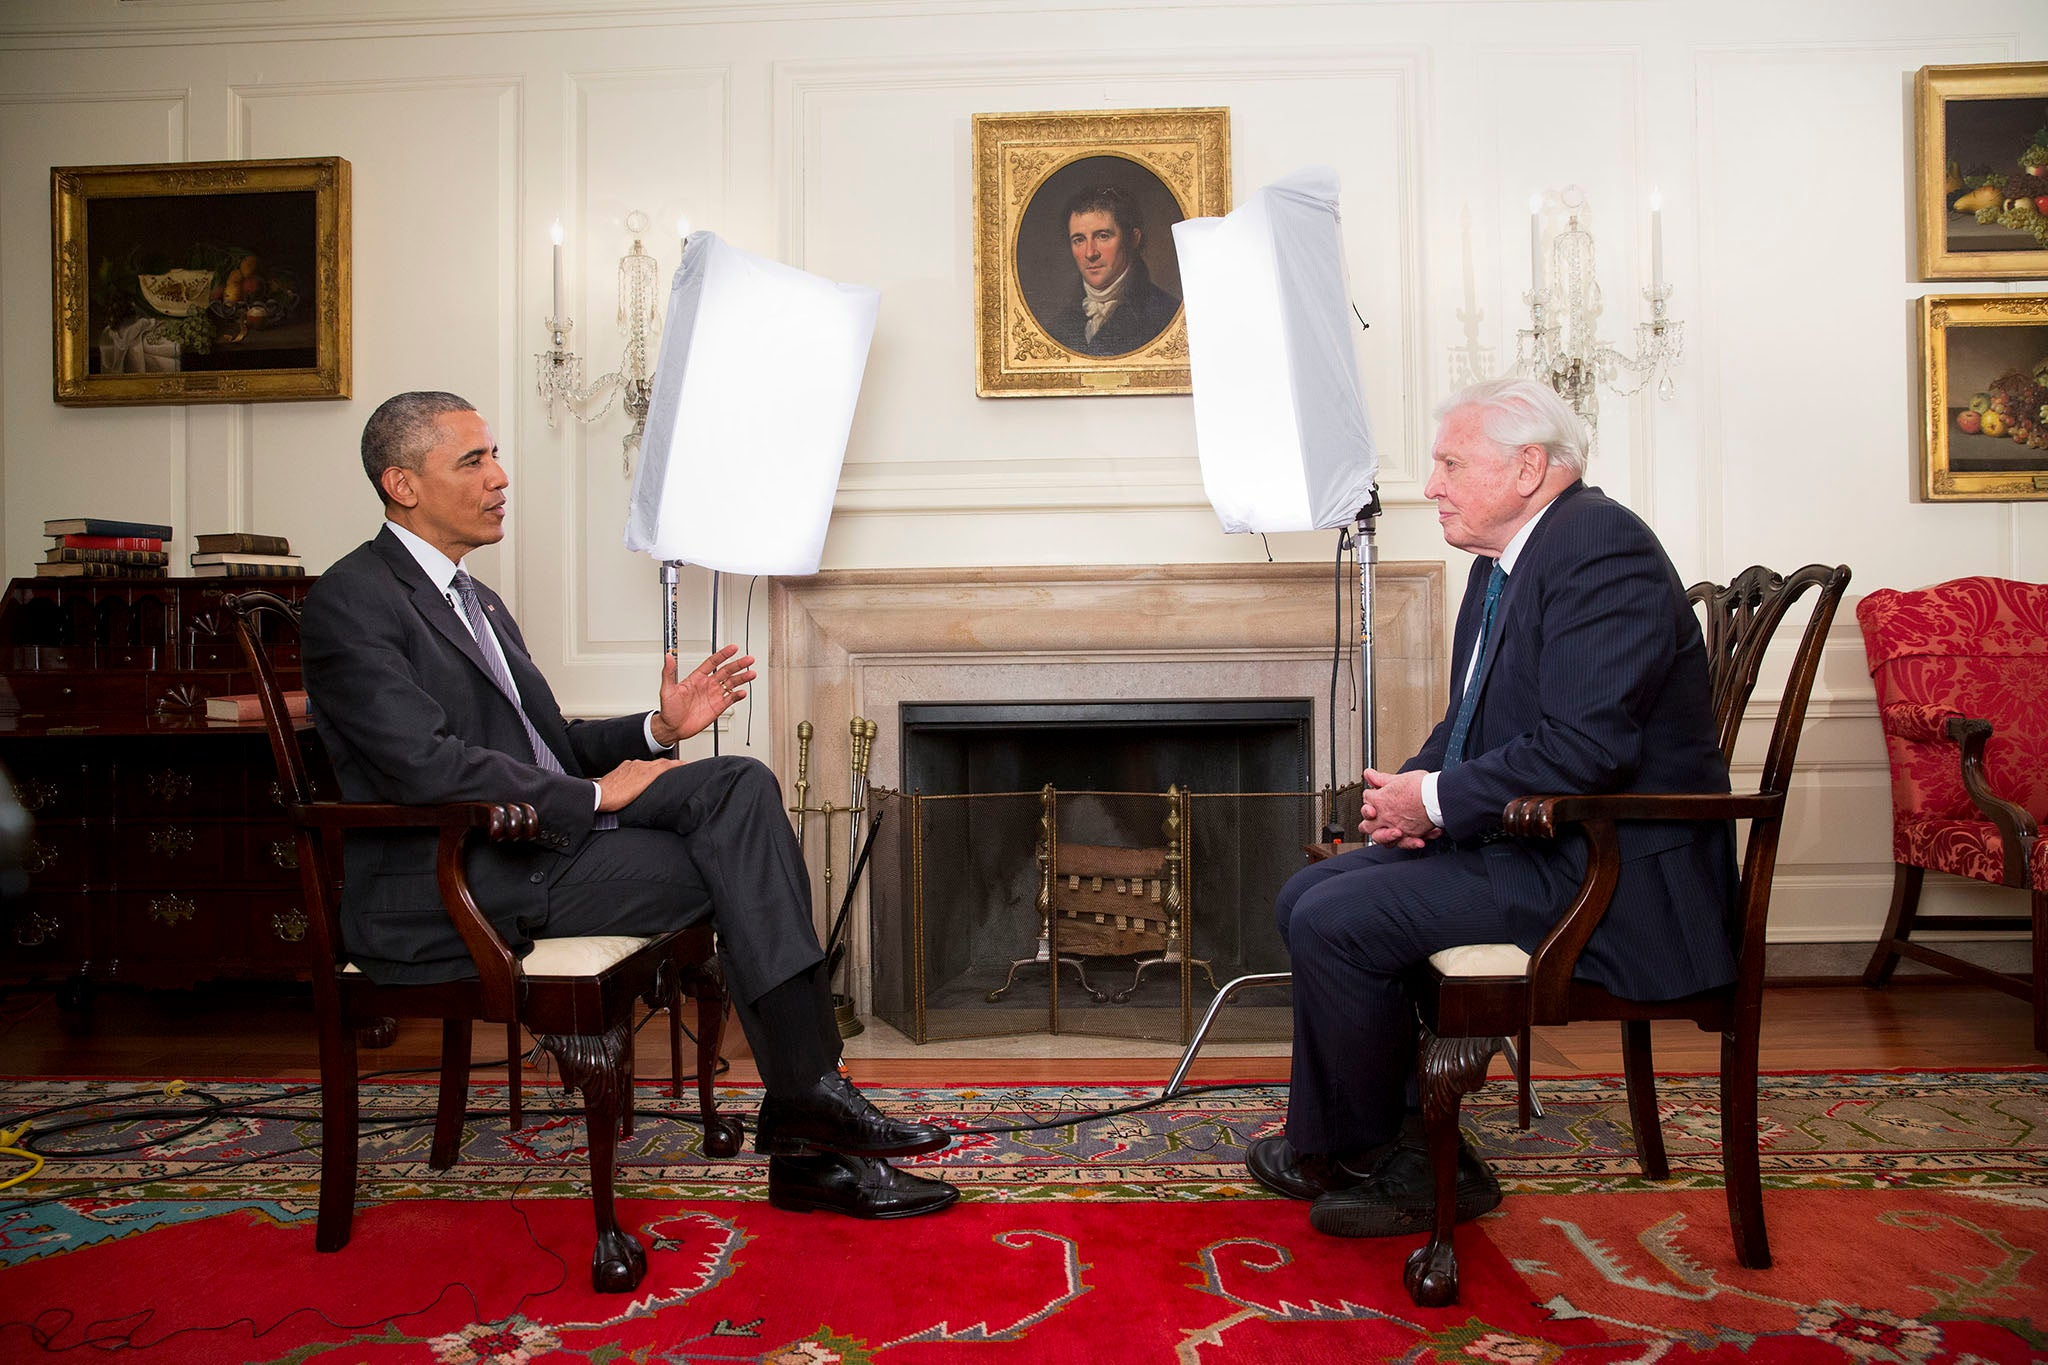 Barack Obama Interviews Sir David Attenborough In Unique